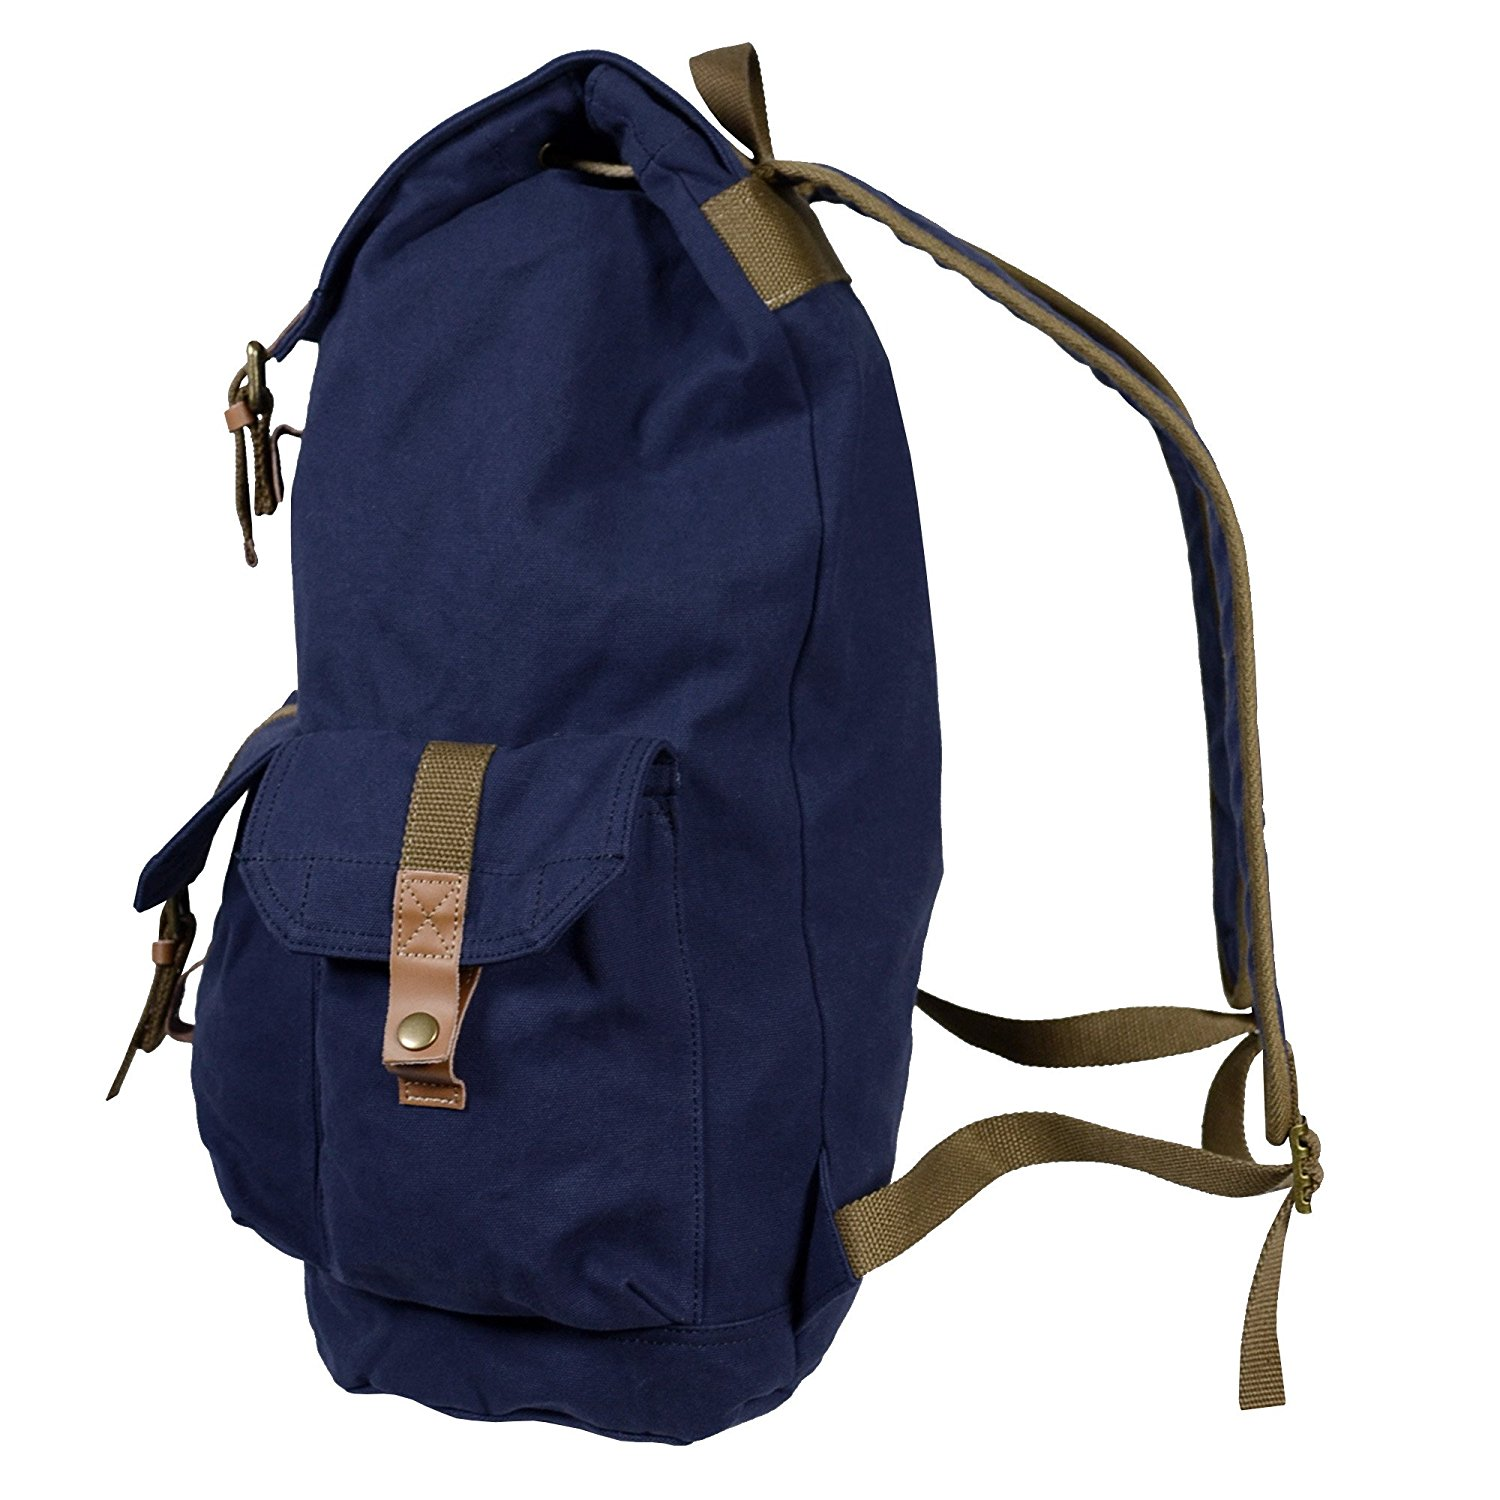 old hiking backpacks images reverse search